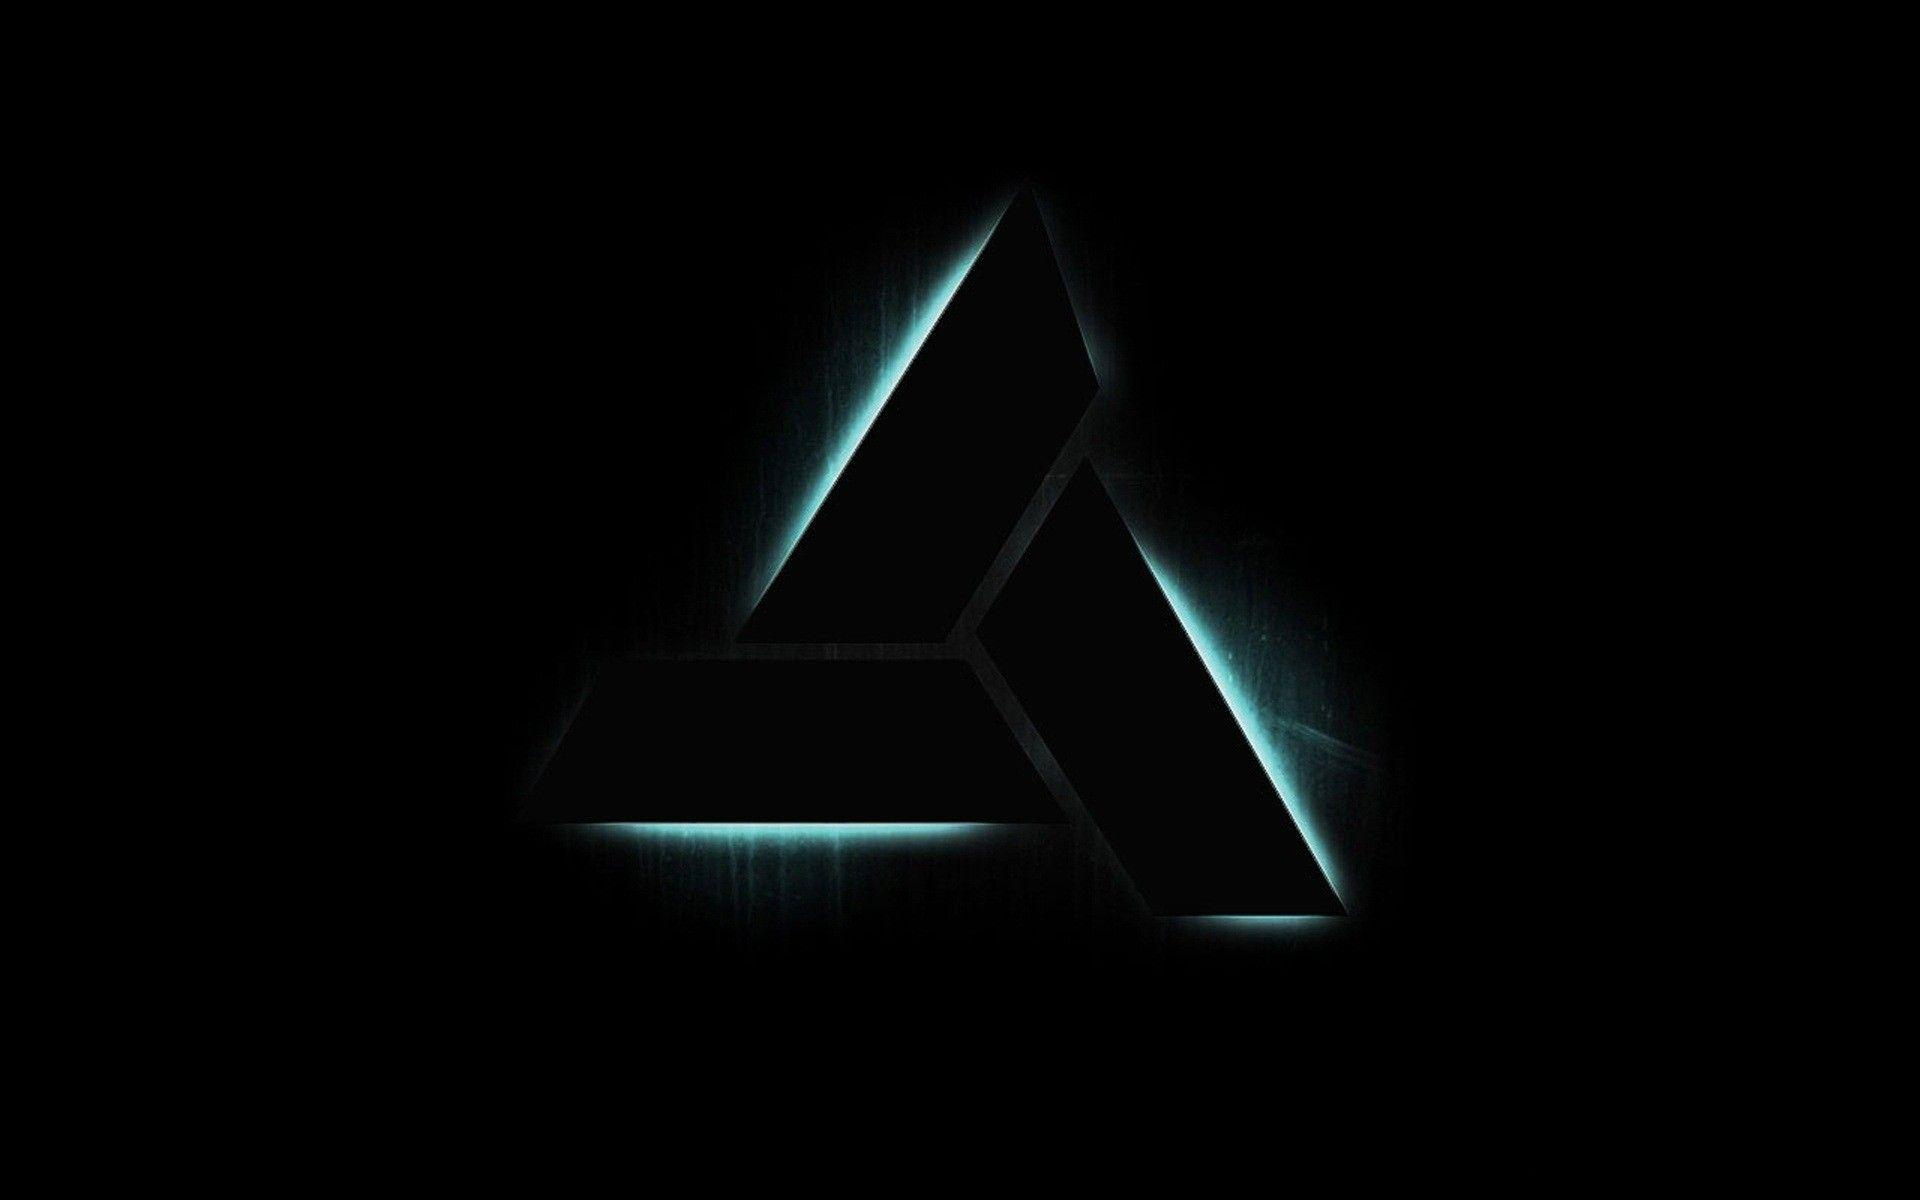 Assassins Creed, logos, triangle, black backgrounds :: Wallpapers